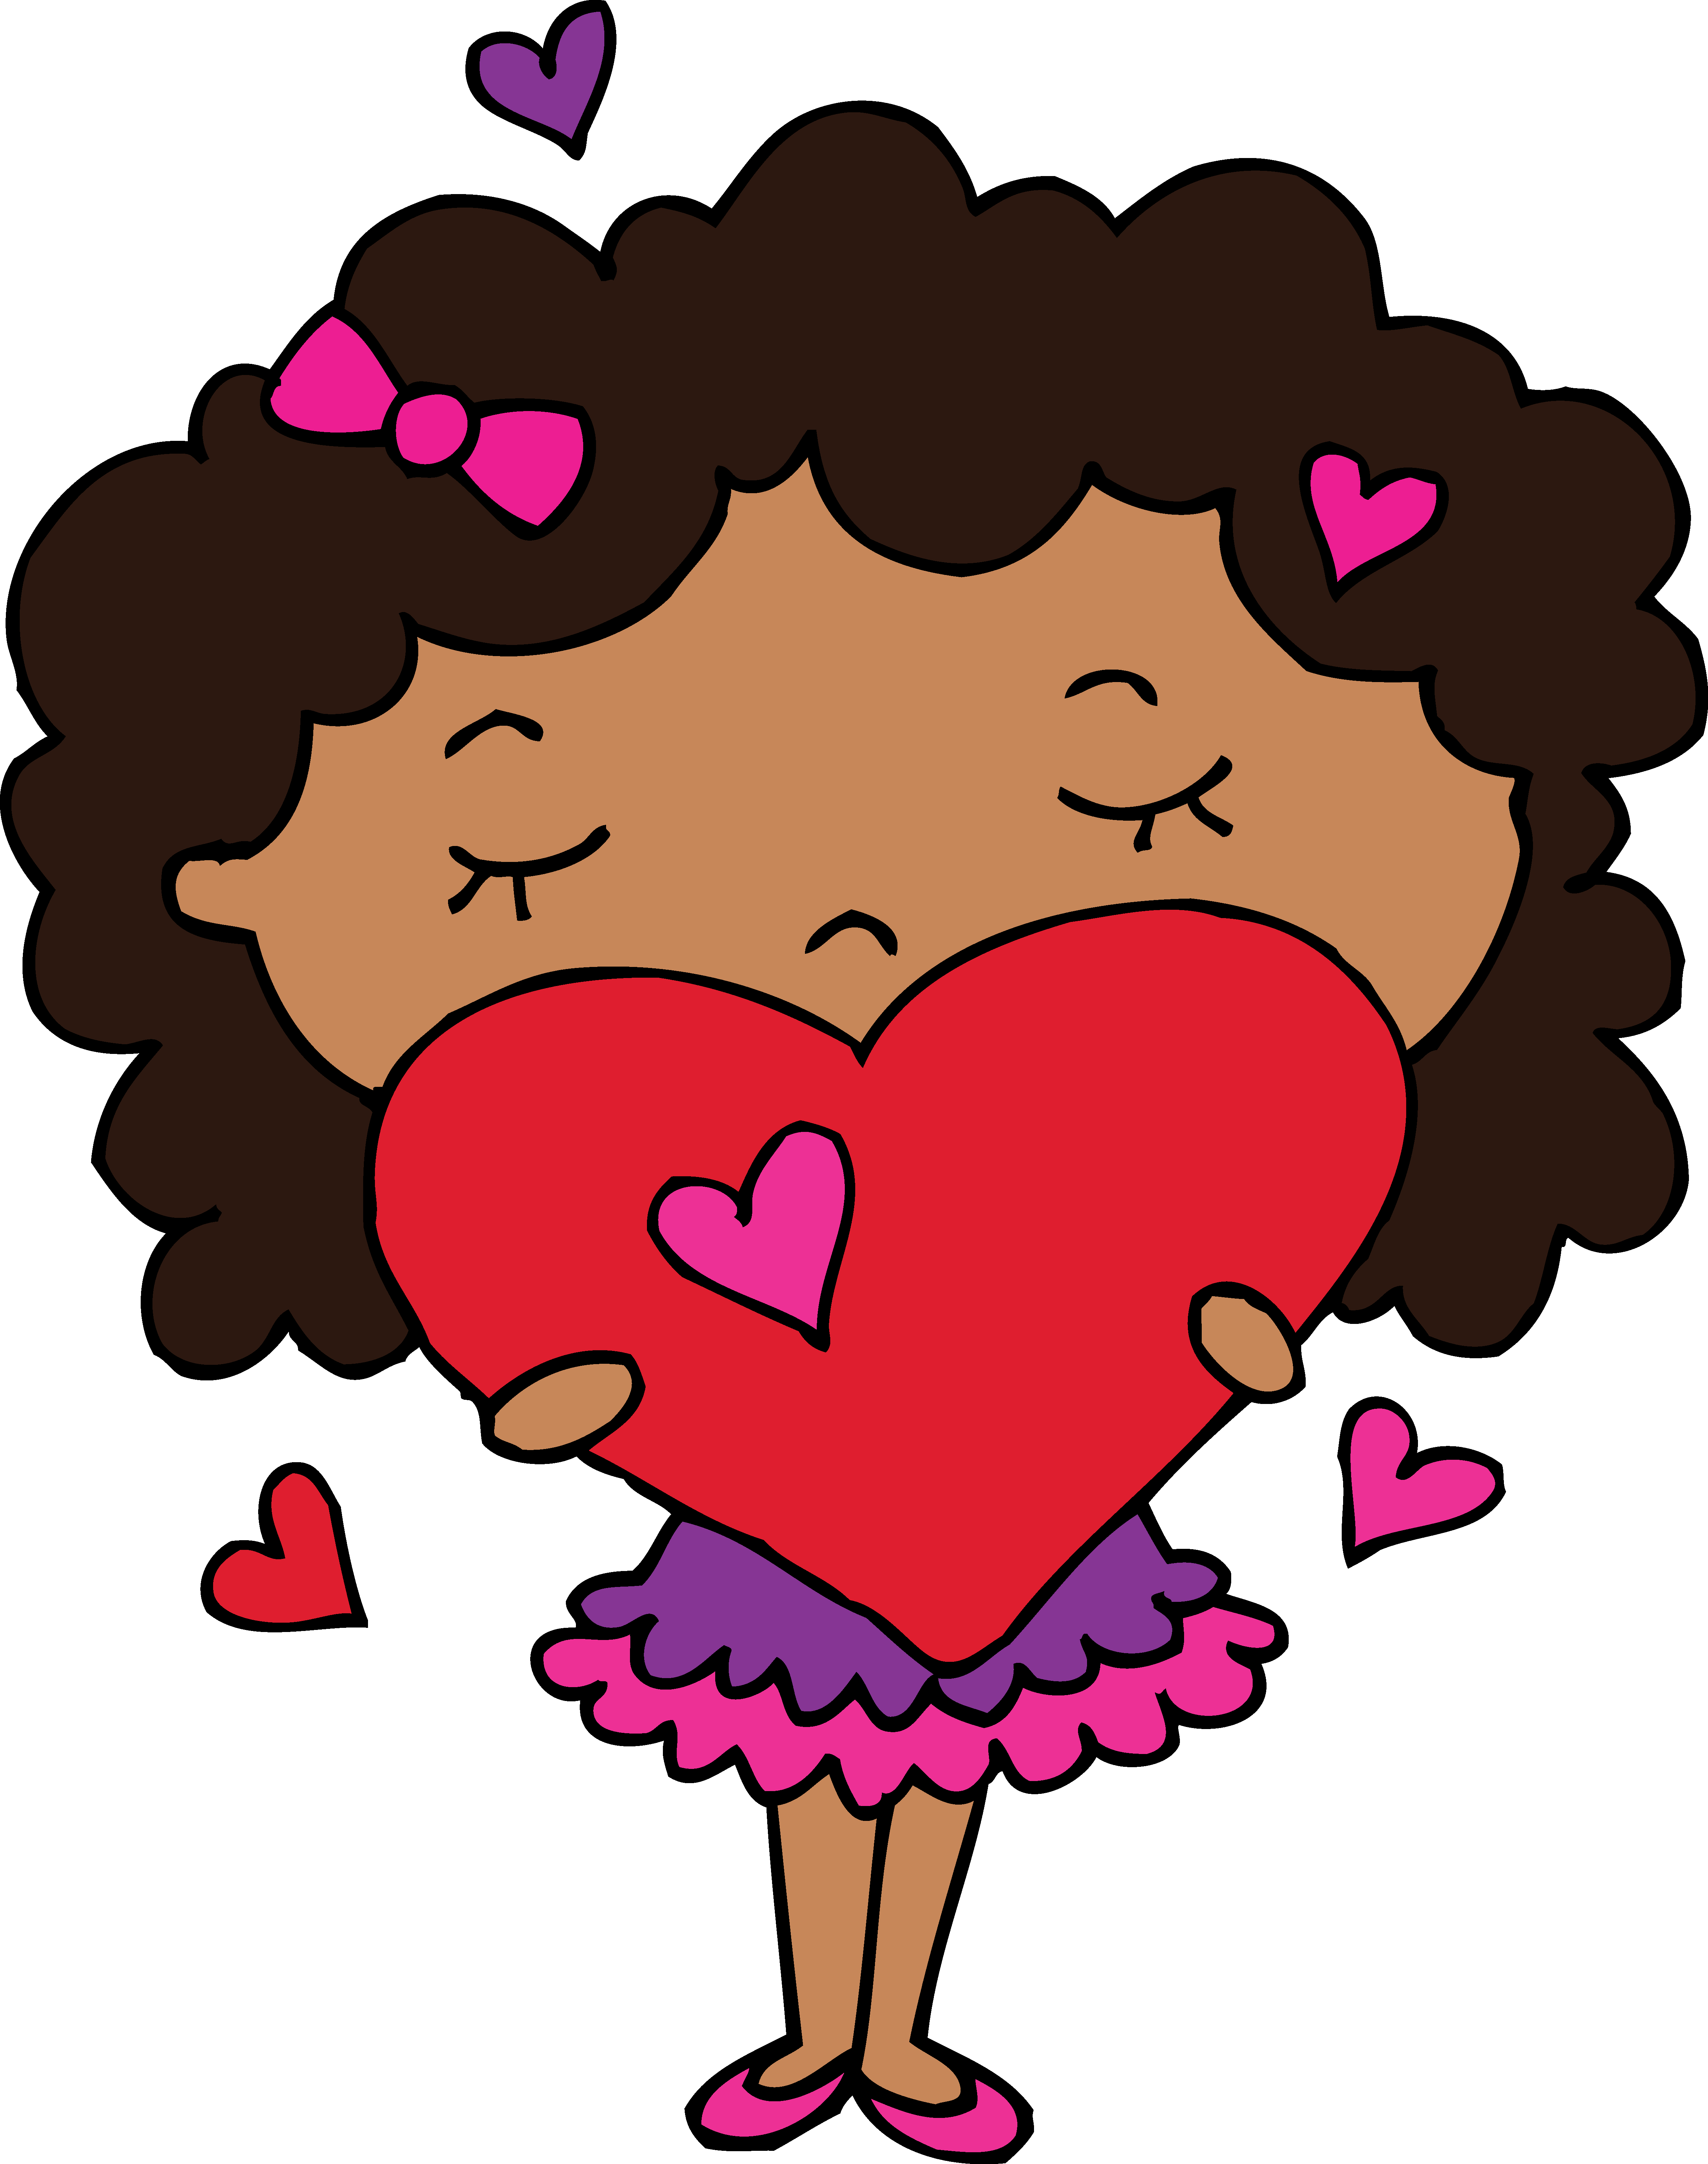 Hearts clipart science.  collection of curly